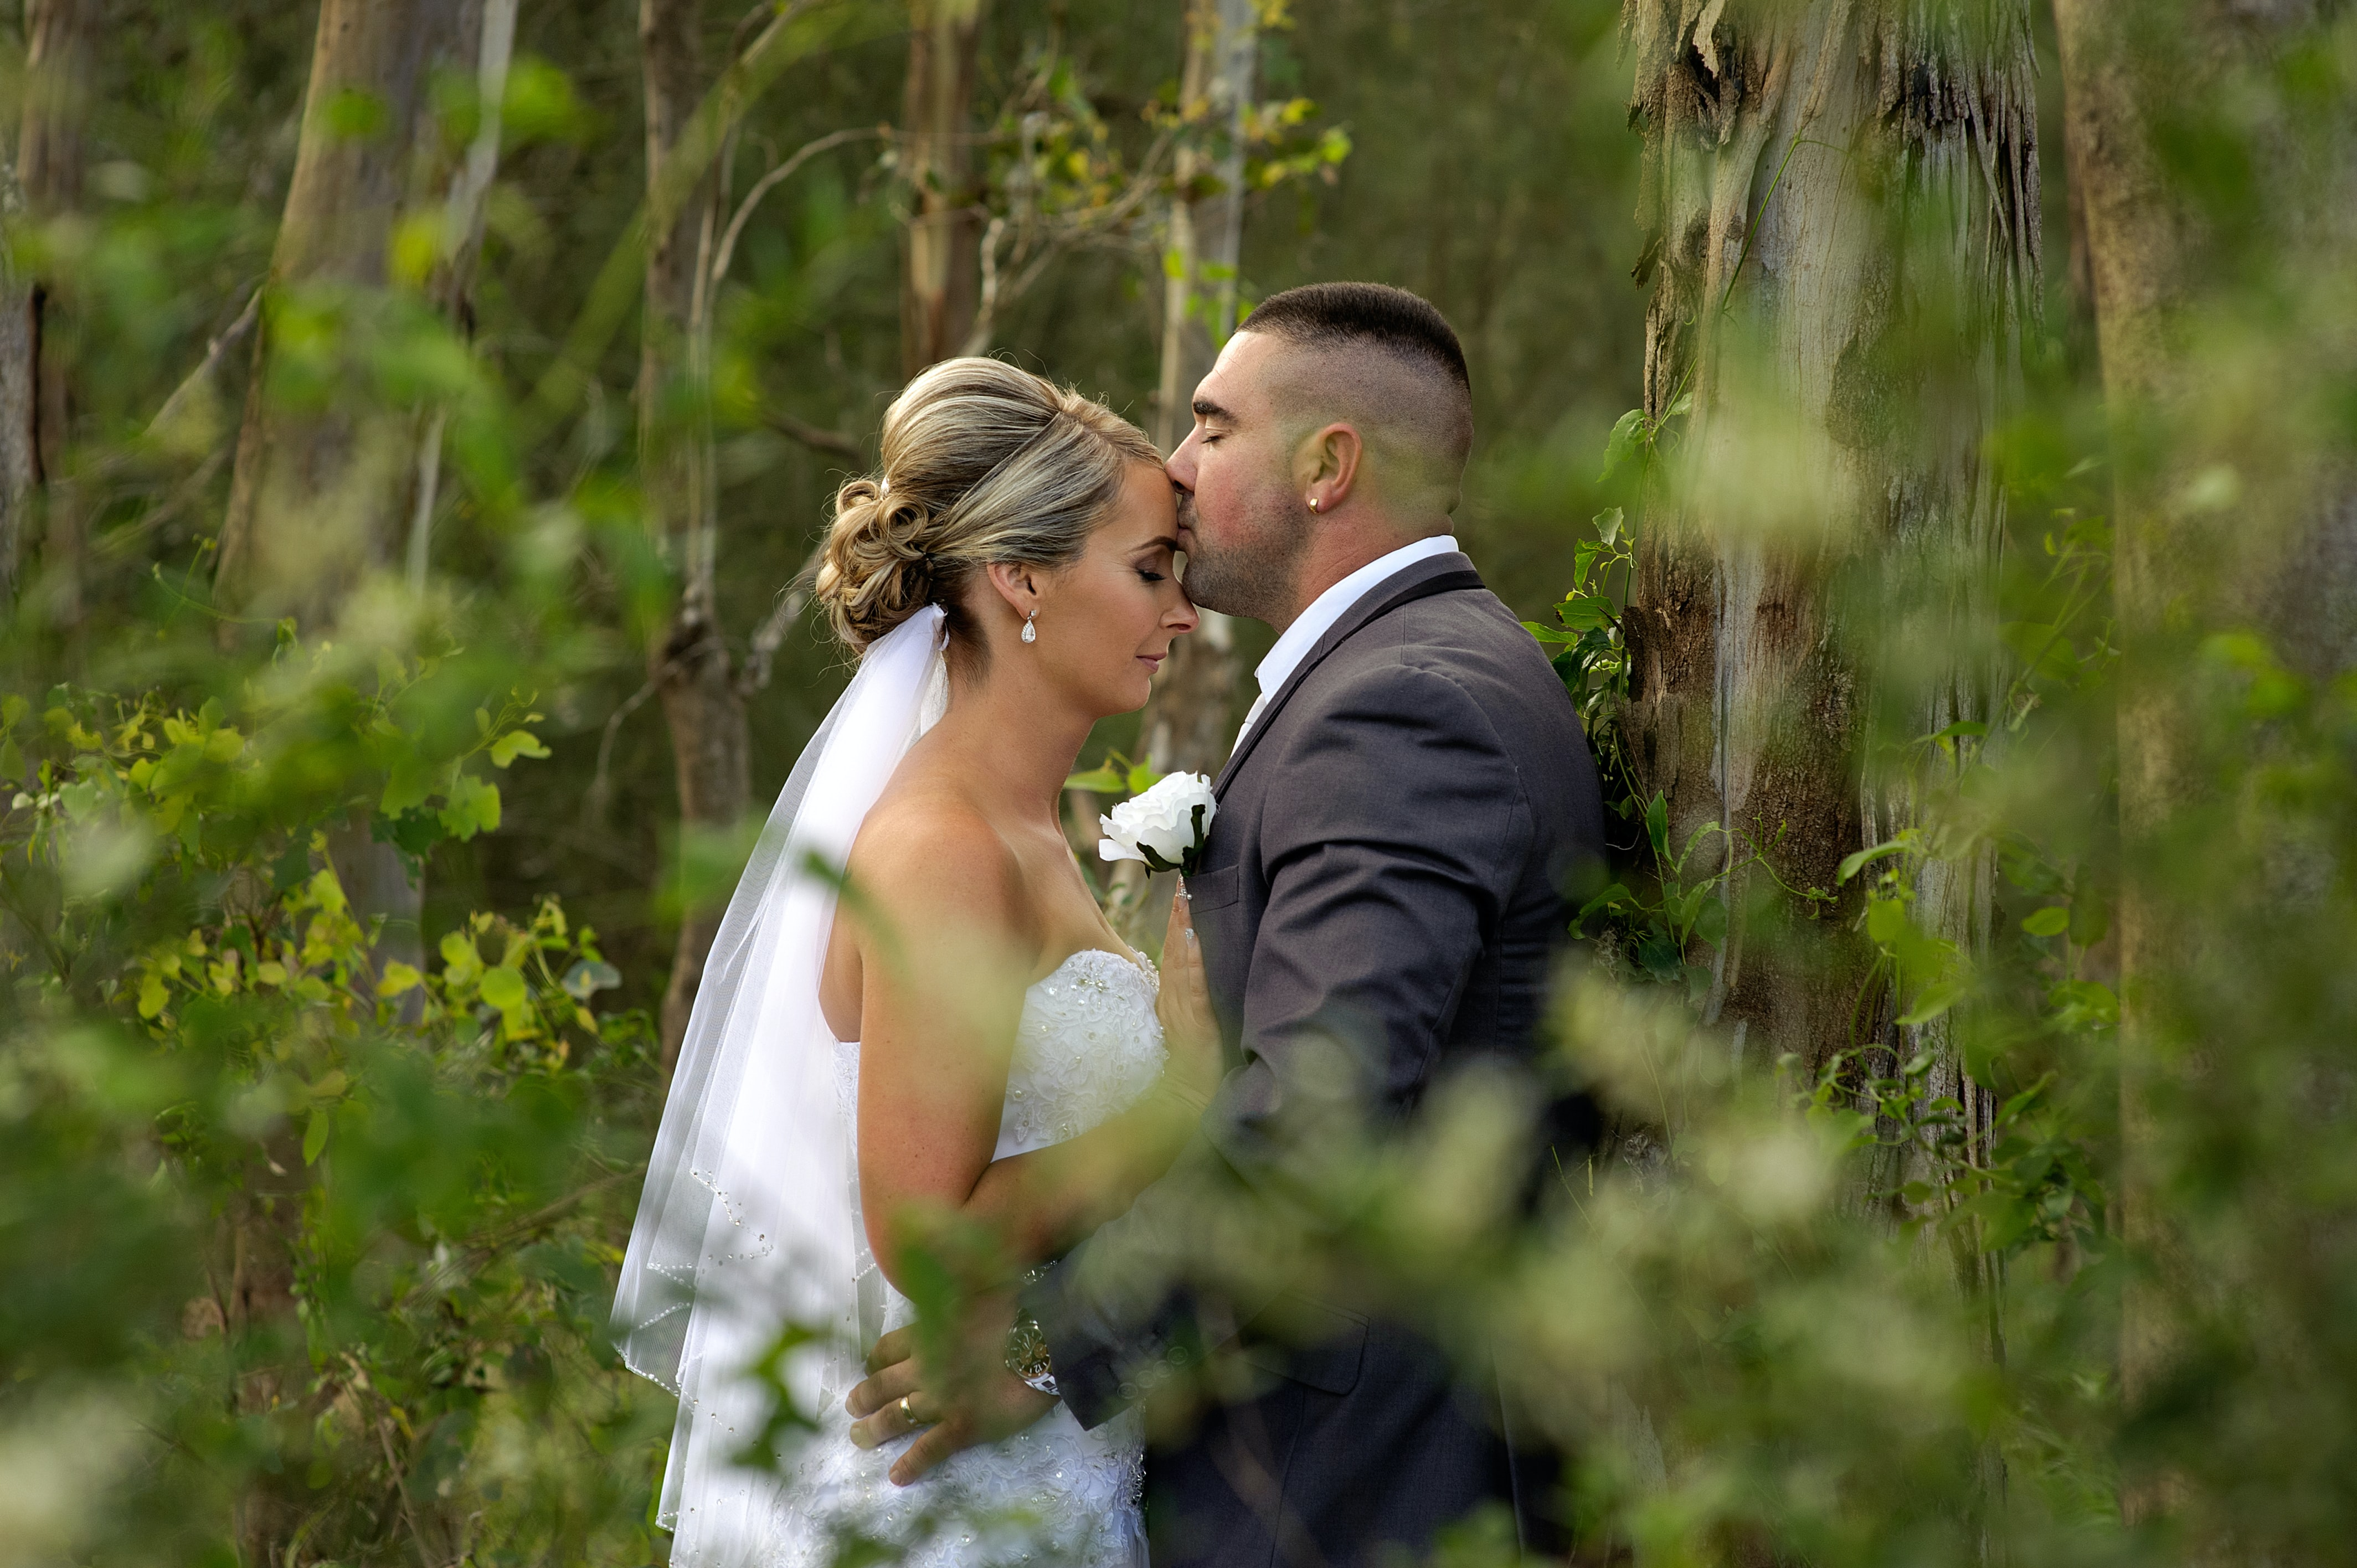 A man kisses a woman's forehead in a forest of trees on their wedding day